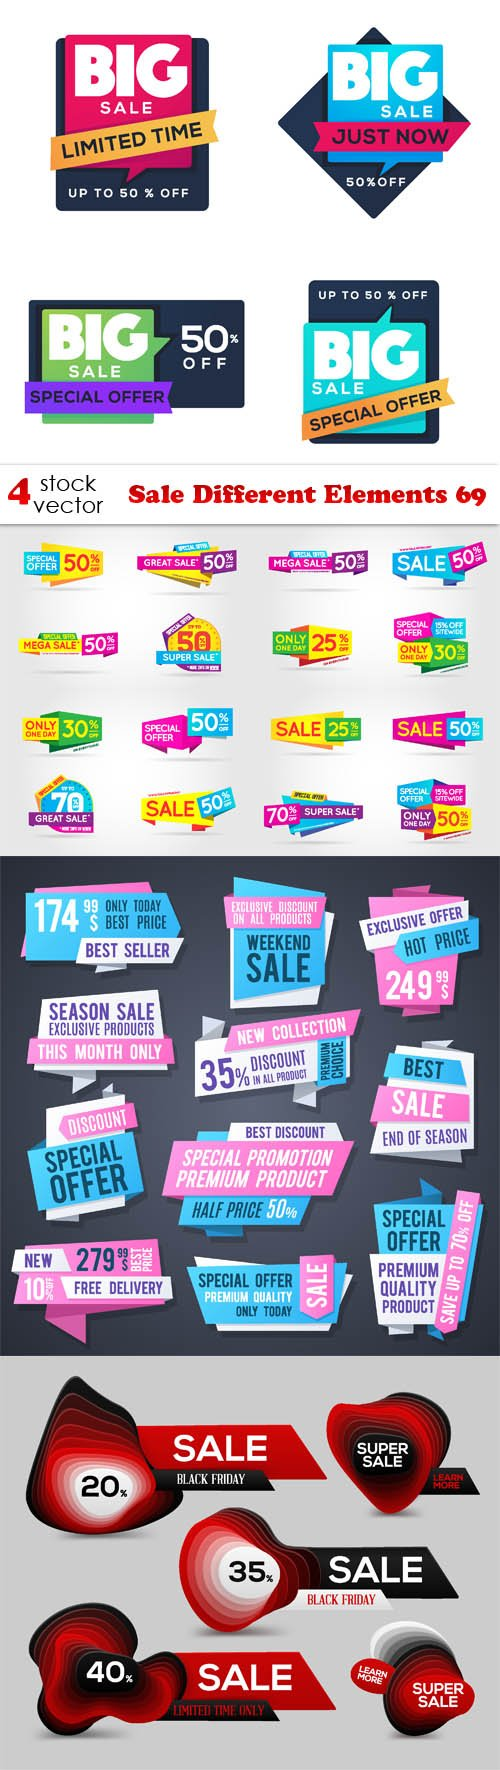 Vectors - Sale Different Elements 69